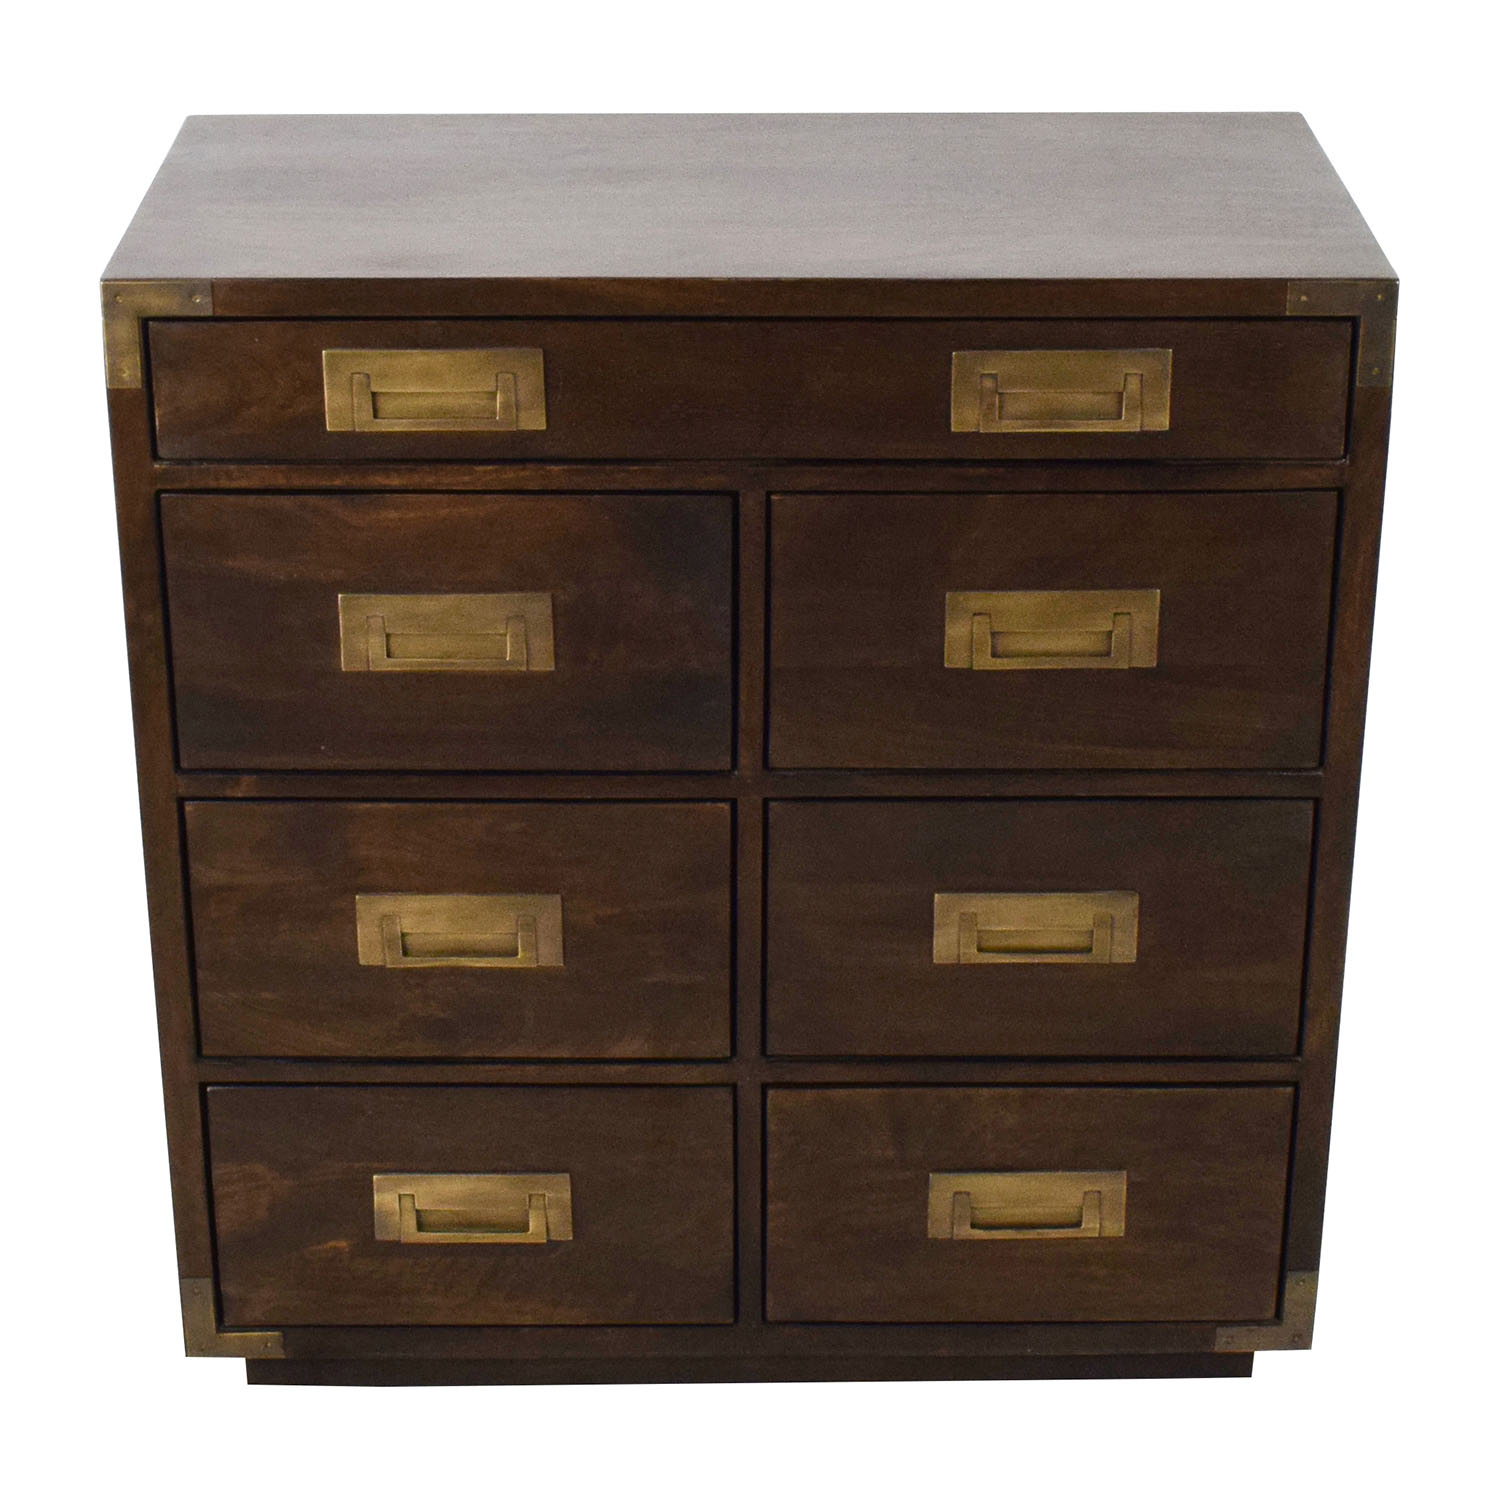 43 off crate and barrel crate barrel 7 drawer bedroom - Crate barrel bedroom furniture ...